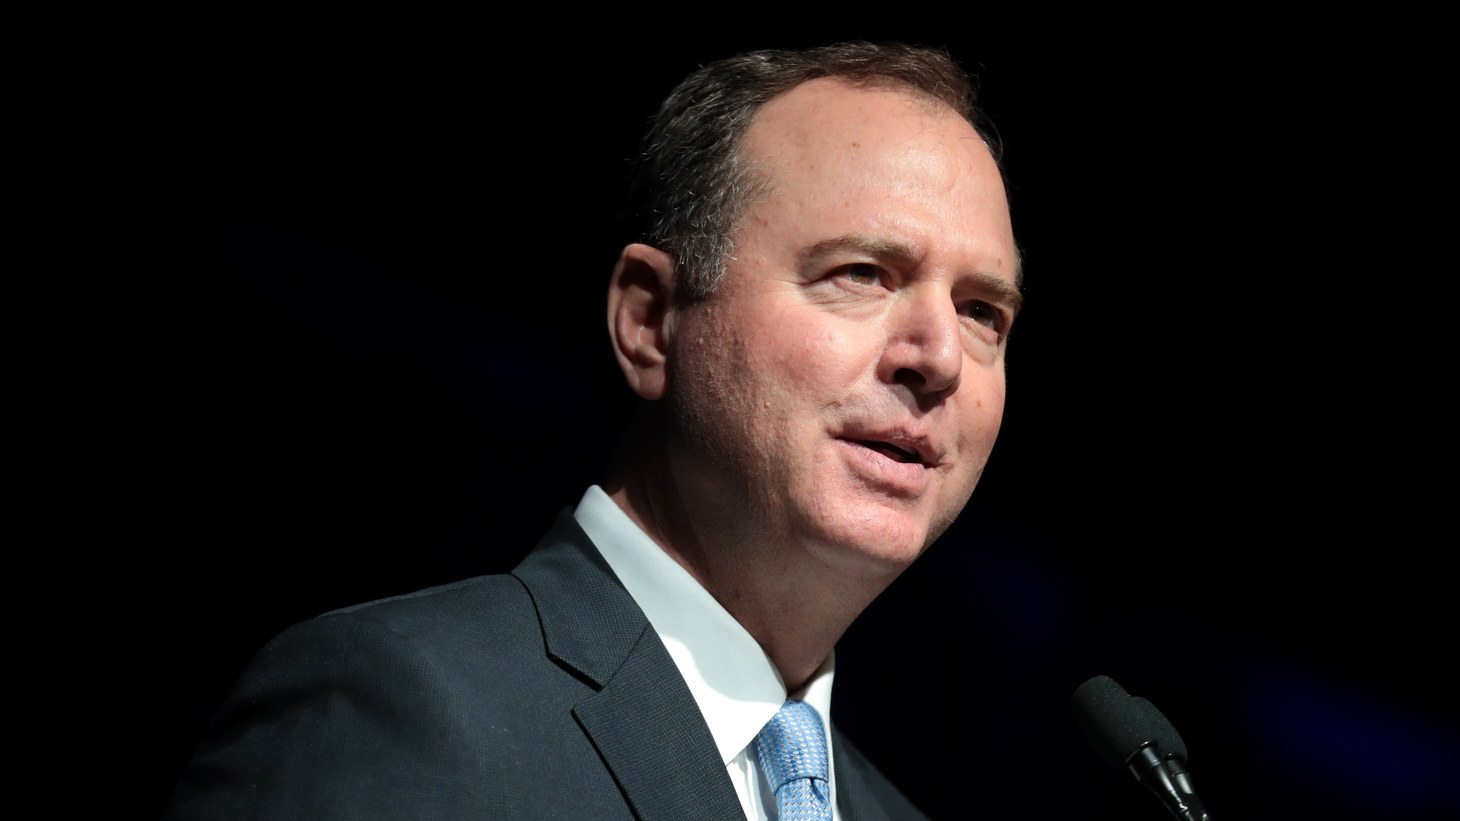 U.S. Congressman Adam Schiff speaking with attendees at the 2019 California Democratic Party State Convention at the George R. Moscone Convention Center in San Francisco, California.